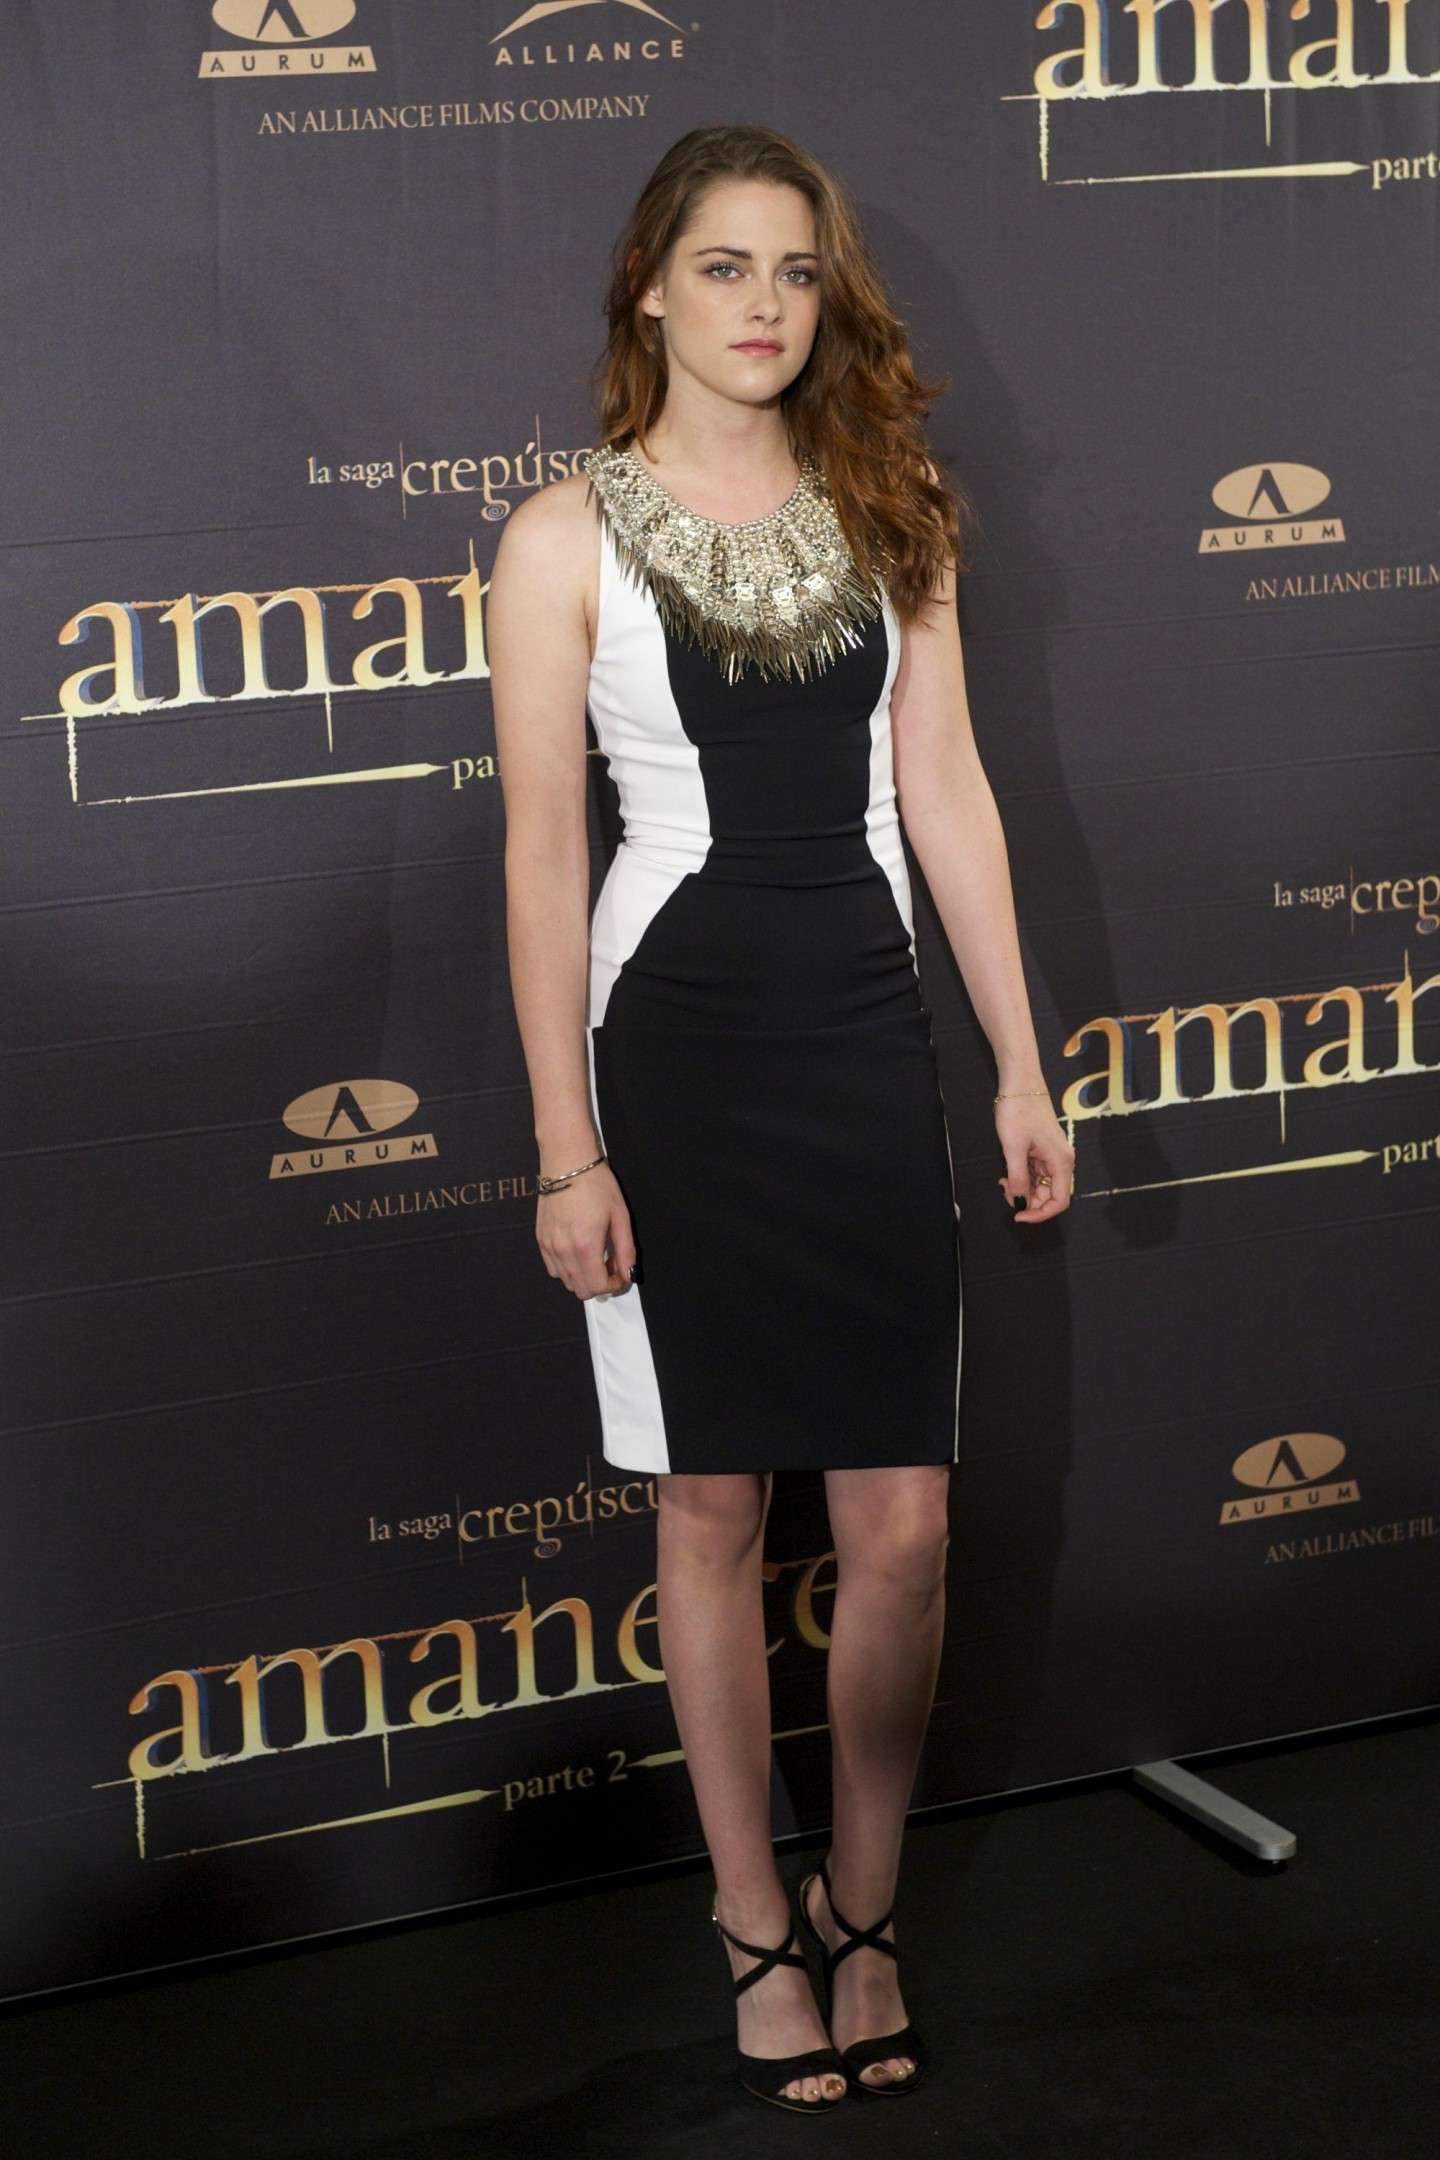 Outfit per la presentazione di The Twilight Saga Breaking Dawn Part 2 a Madrid